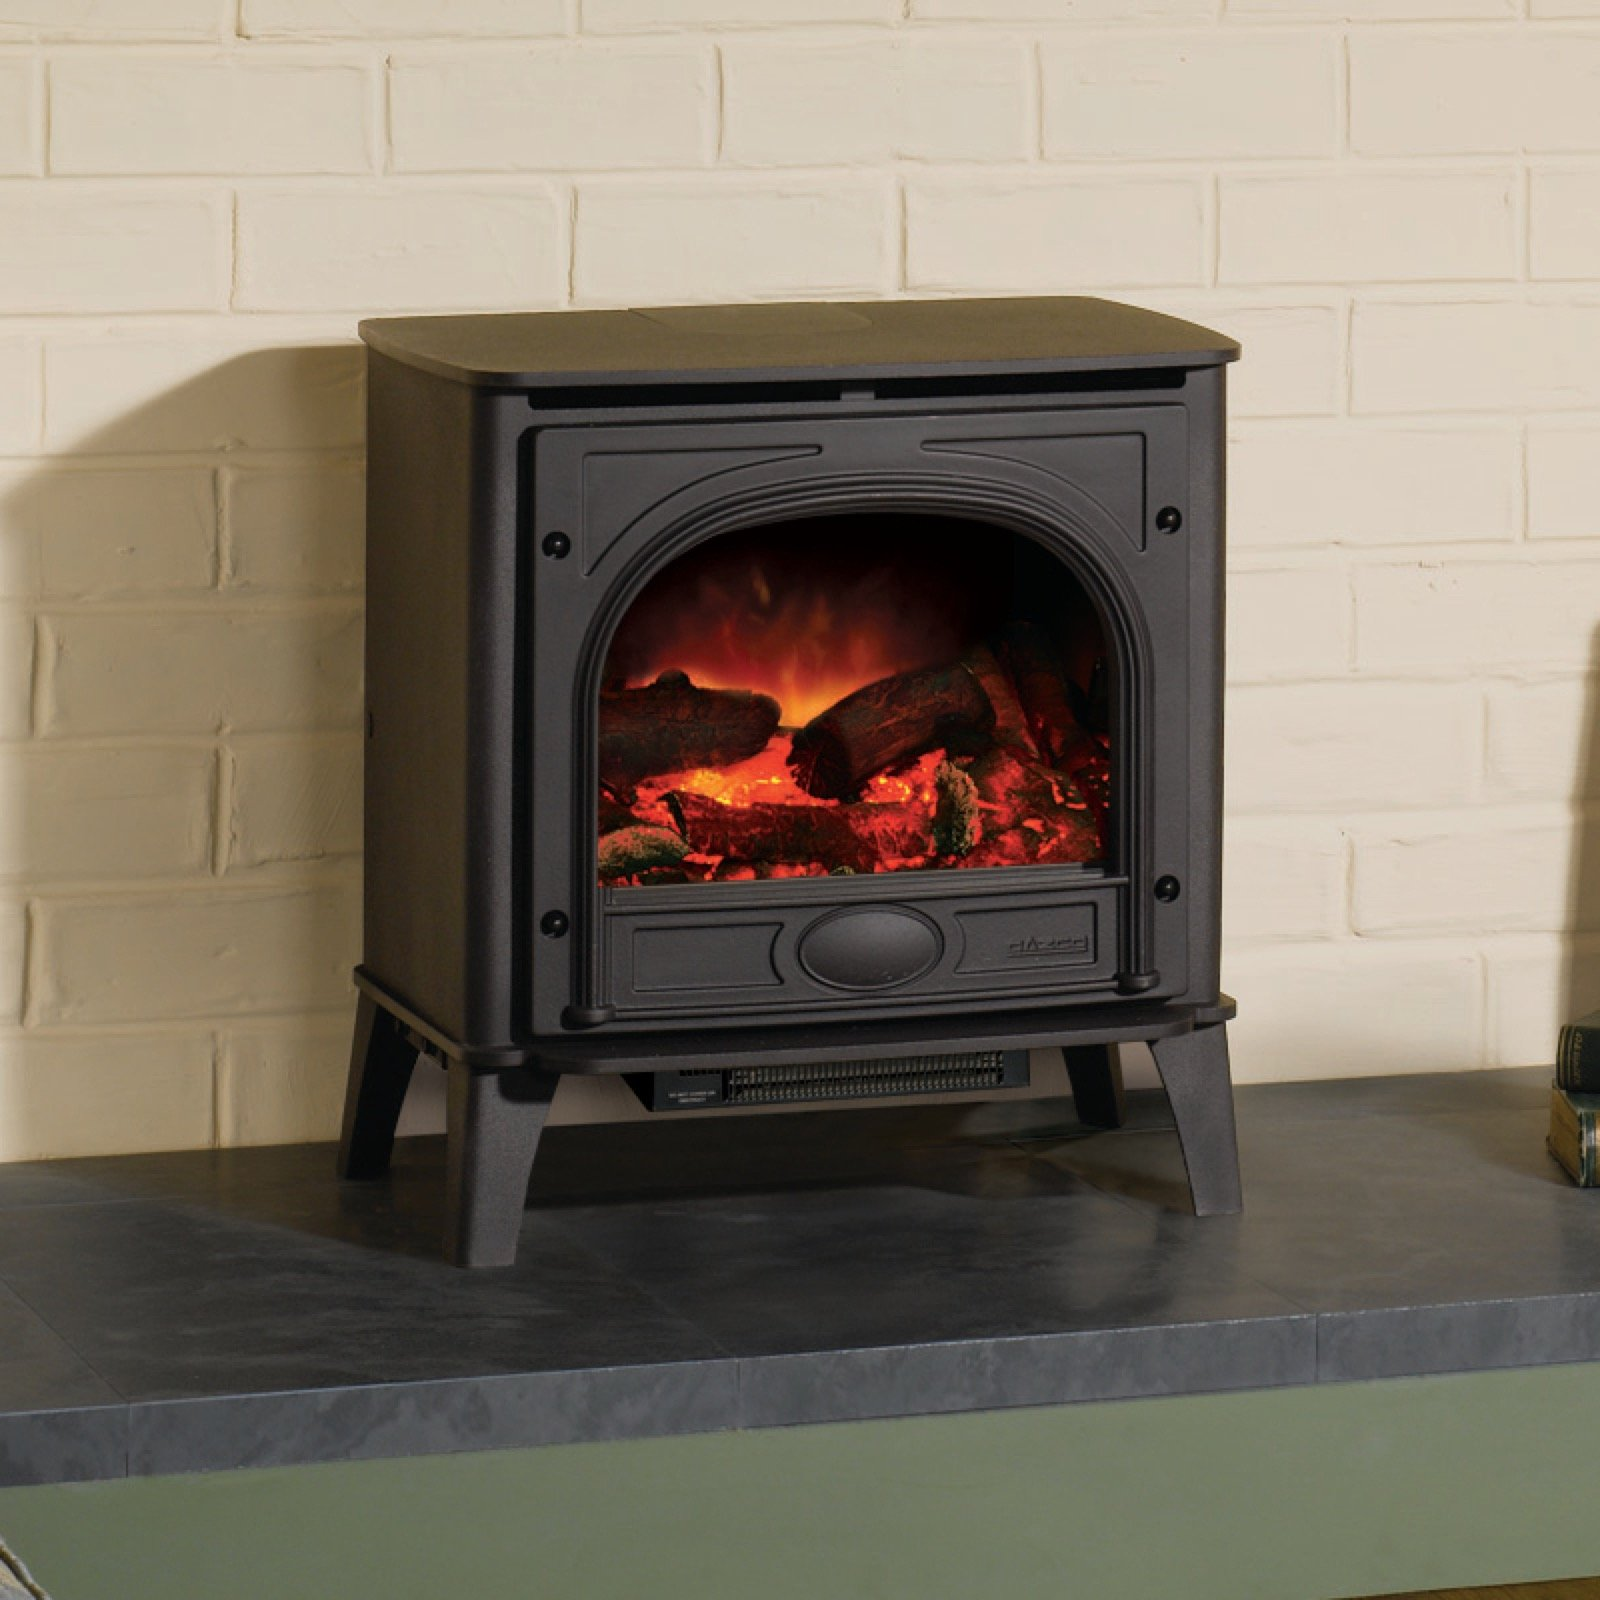 gazco medium stockon electric stove simply stoves. Black Bedroom Furniture Sets. Home Design Ideas